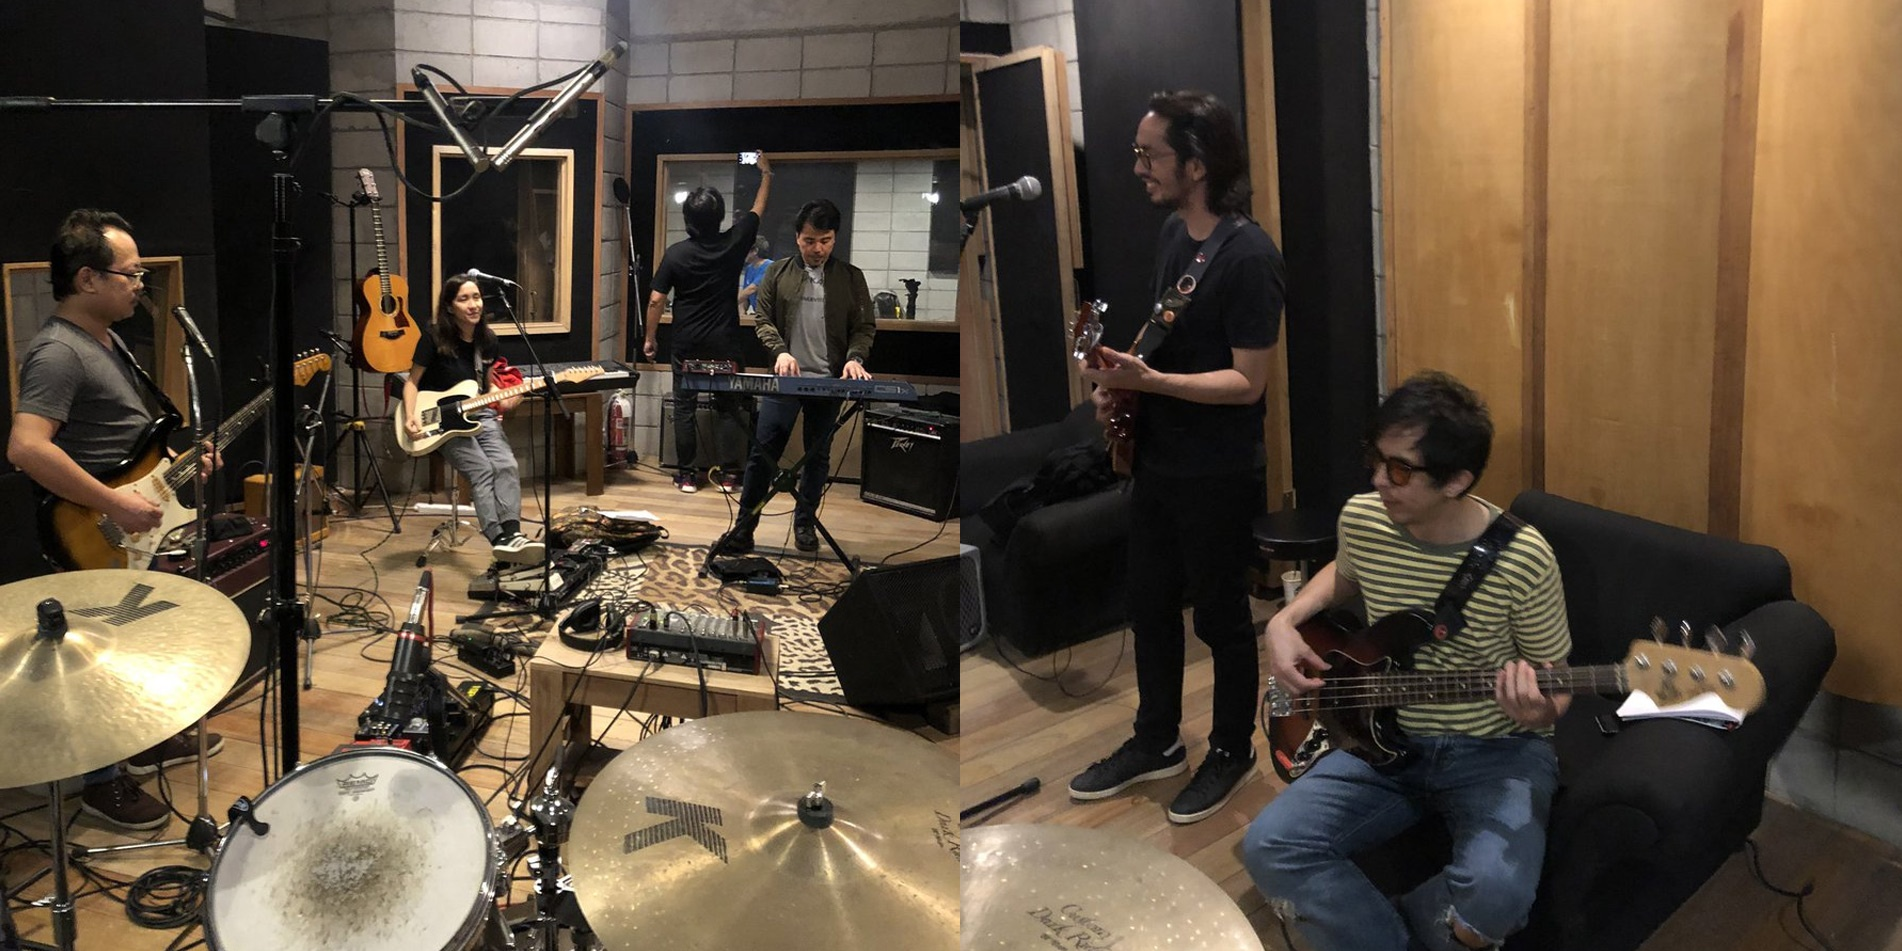 These six Filipino rock icons just turned a Twitter convo into a 5-hour U2 jam session and a secret show